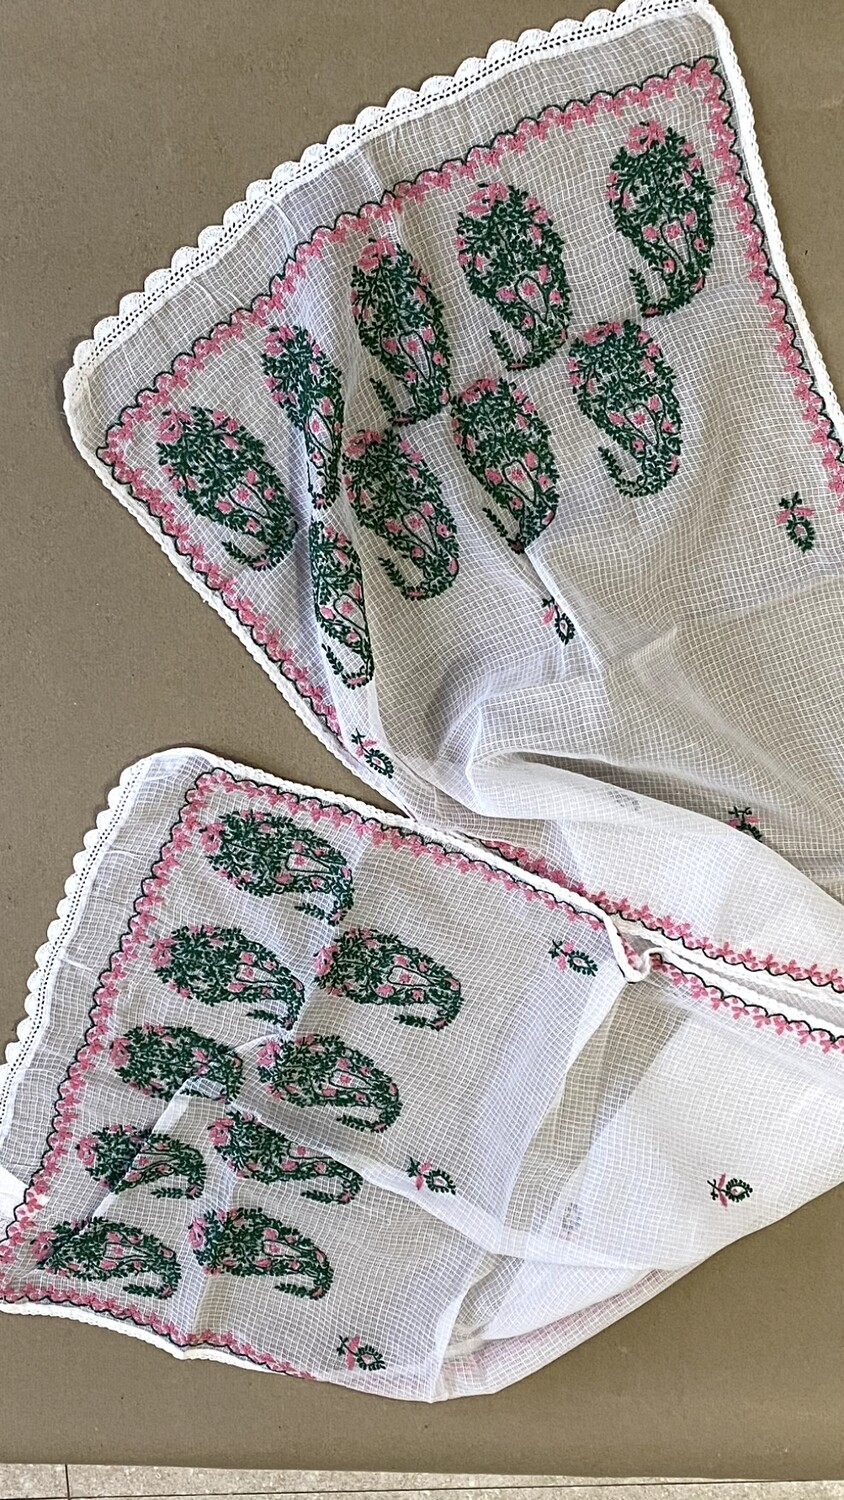 Kota white with pink and green keri stole